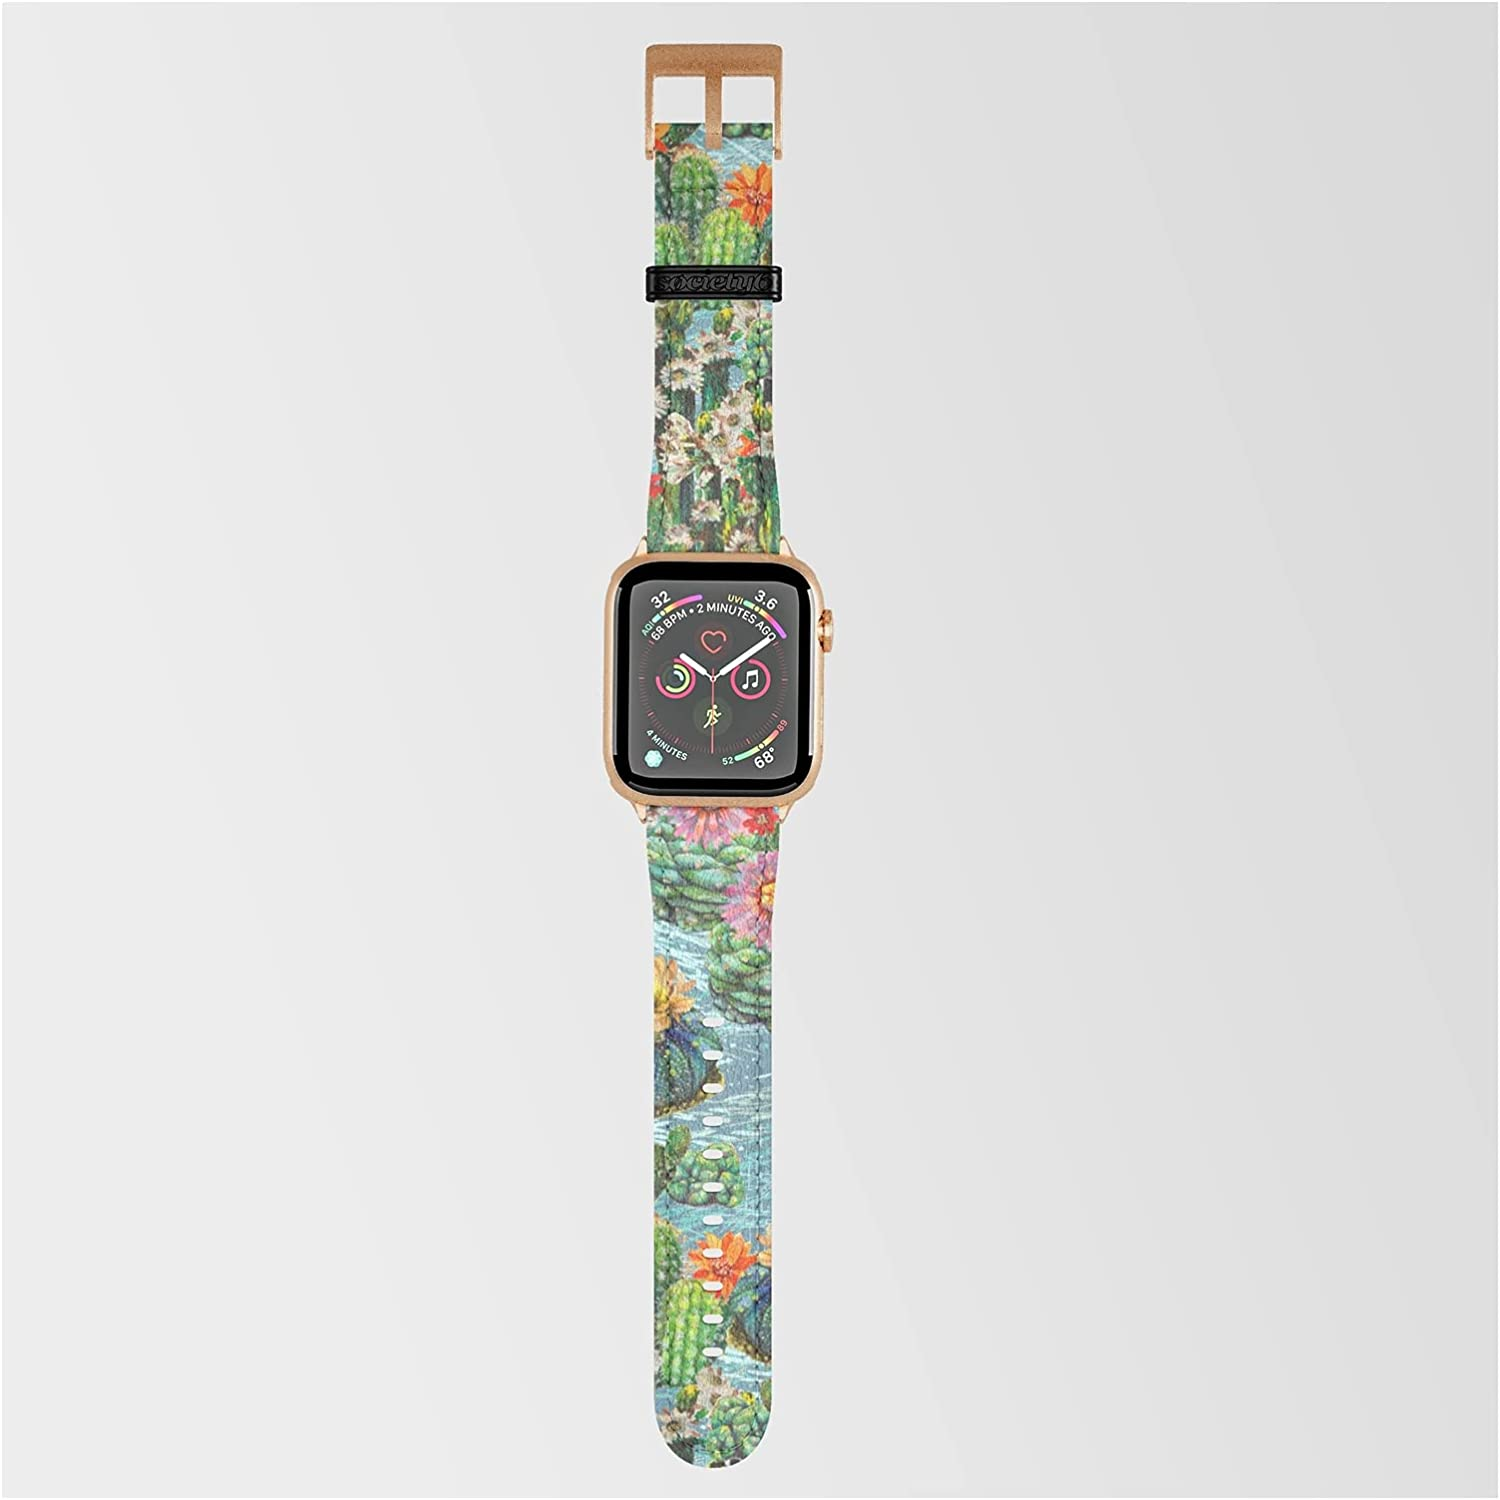 Cactus Desert - Popular popular BBG by Janeferwong Clearance SALE! Limited time! on Band Smartwatch Compatible